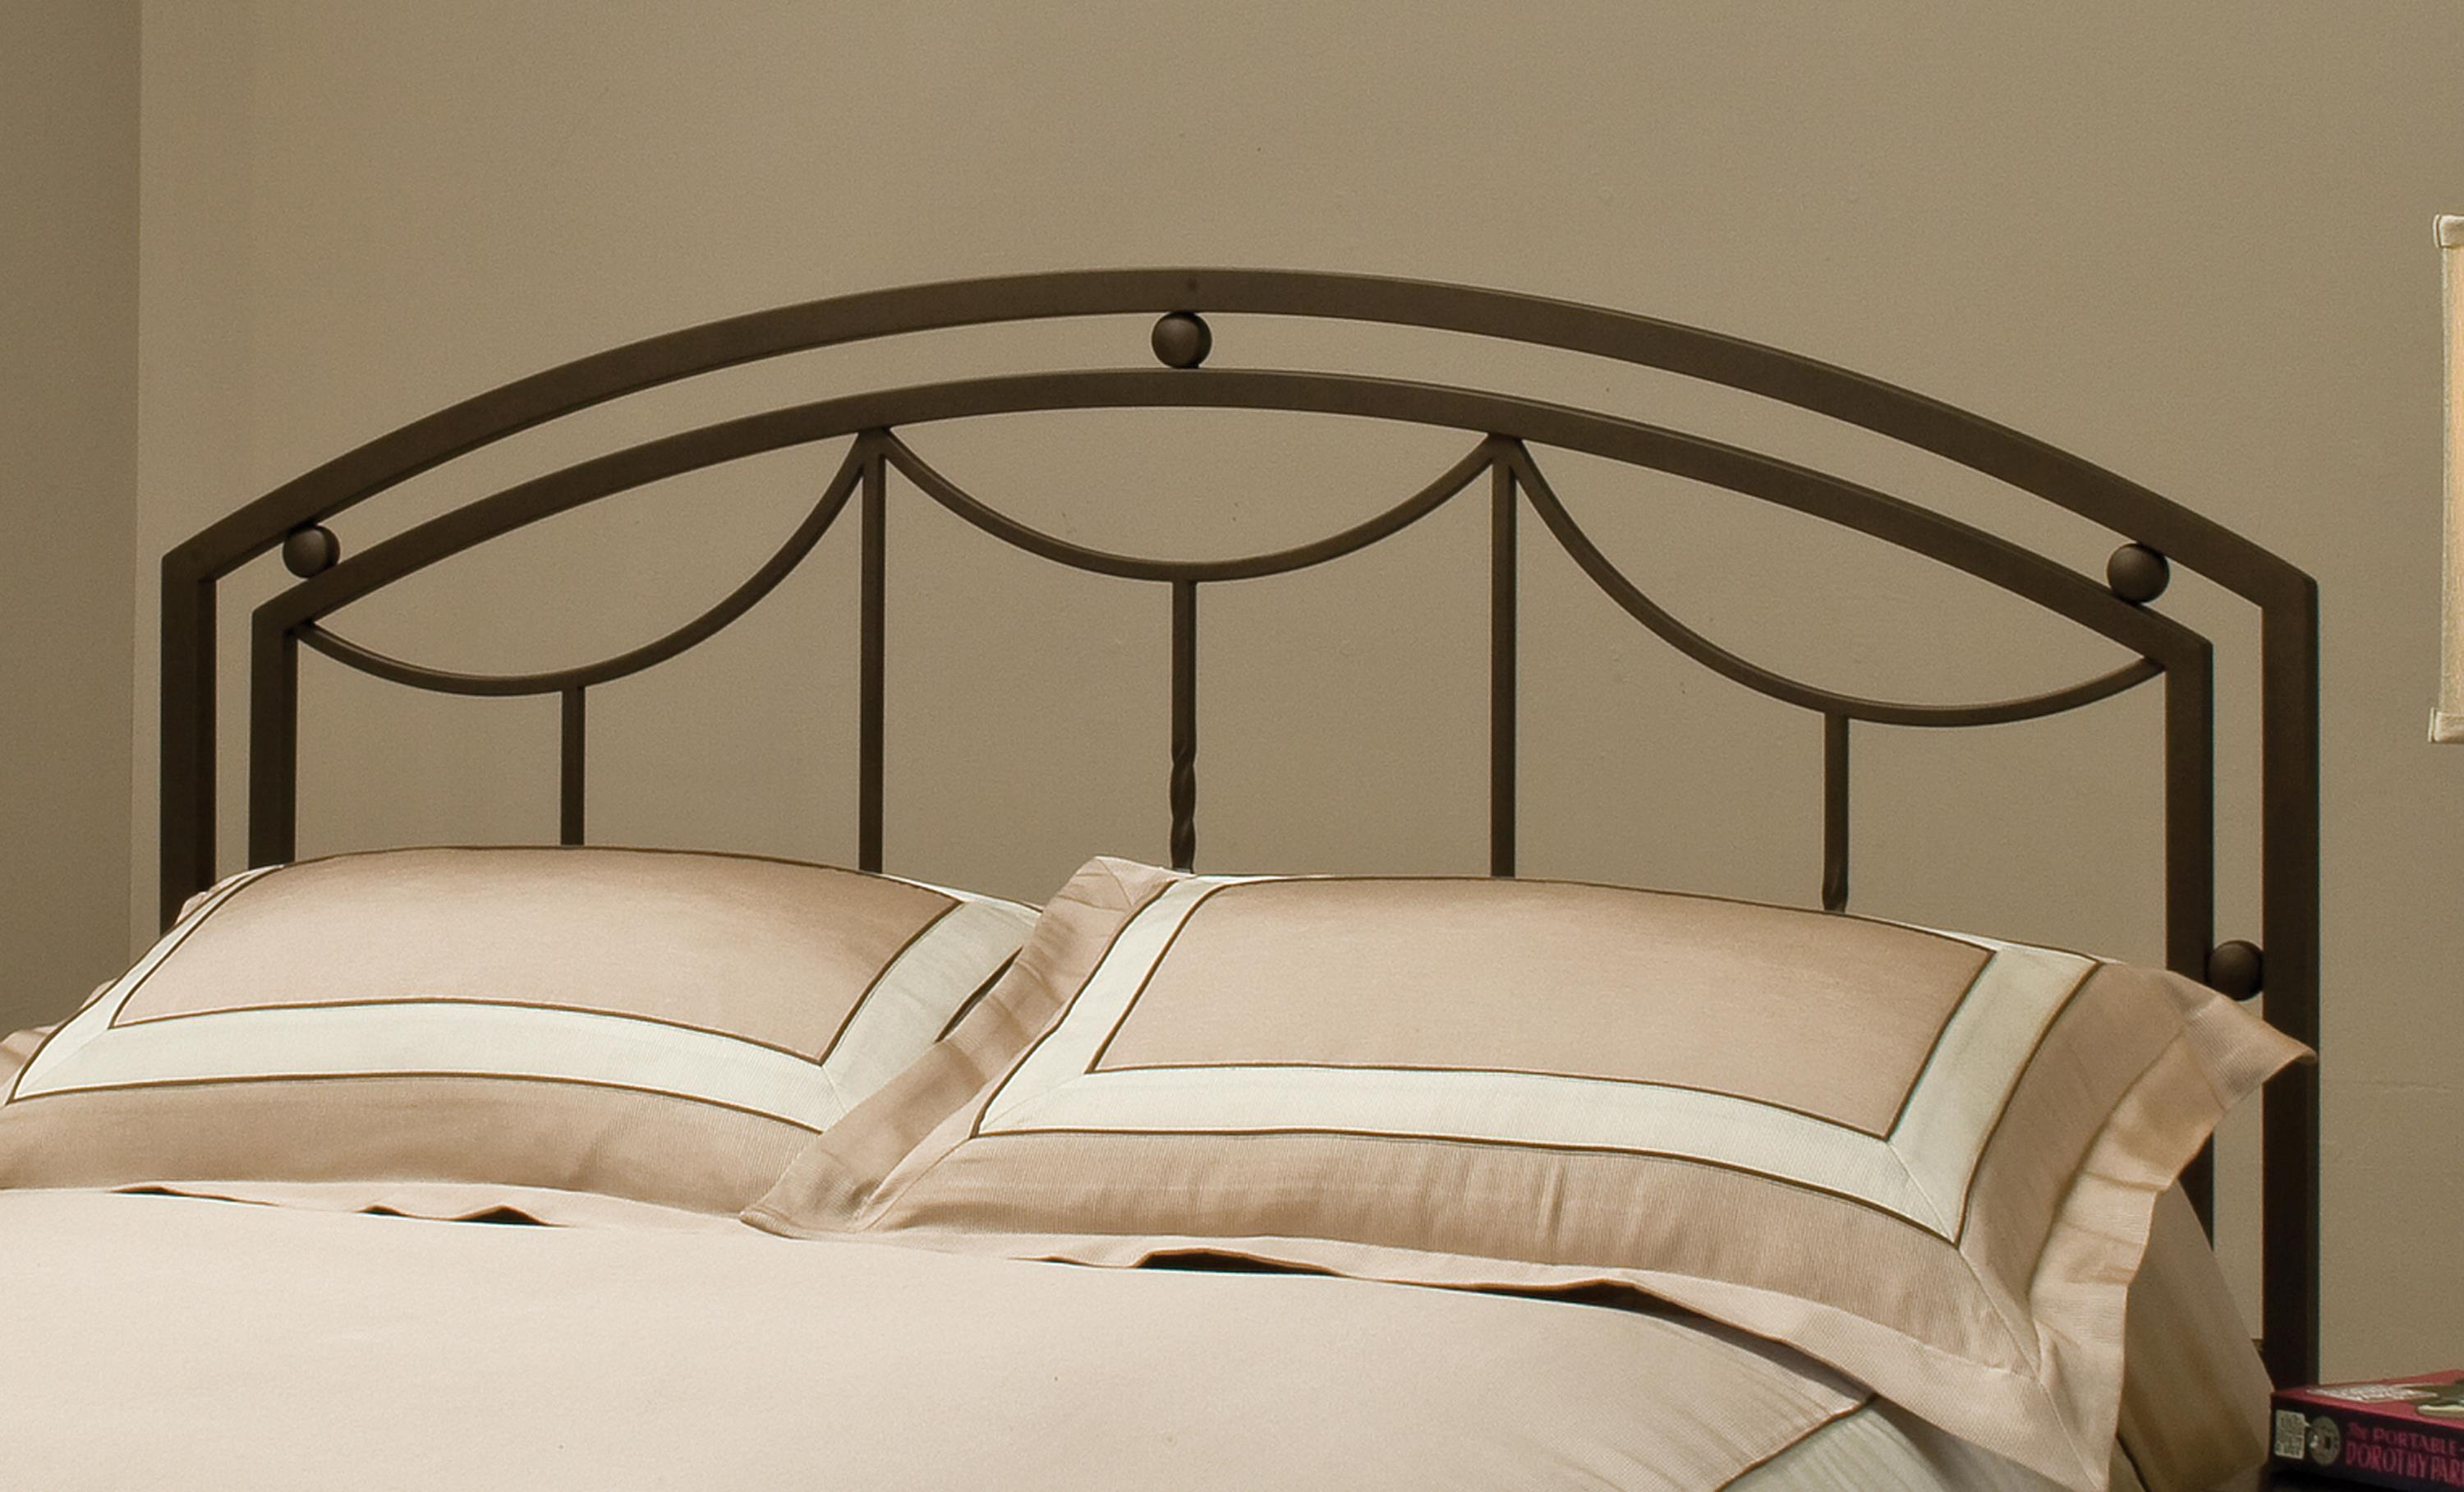 Hillsdale Metal Beds Arlington Full/Queen Headboard - Item Number: 1501HFQR